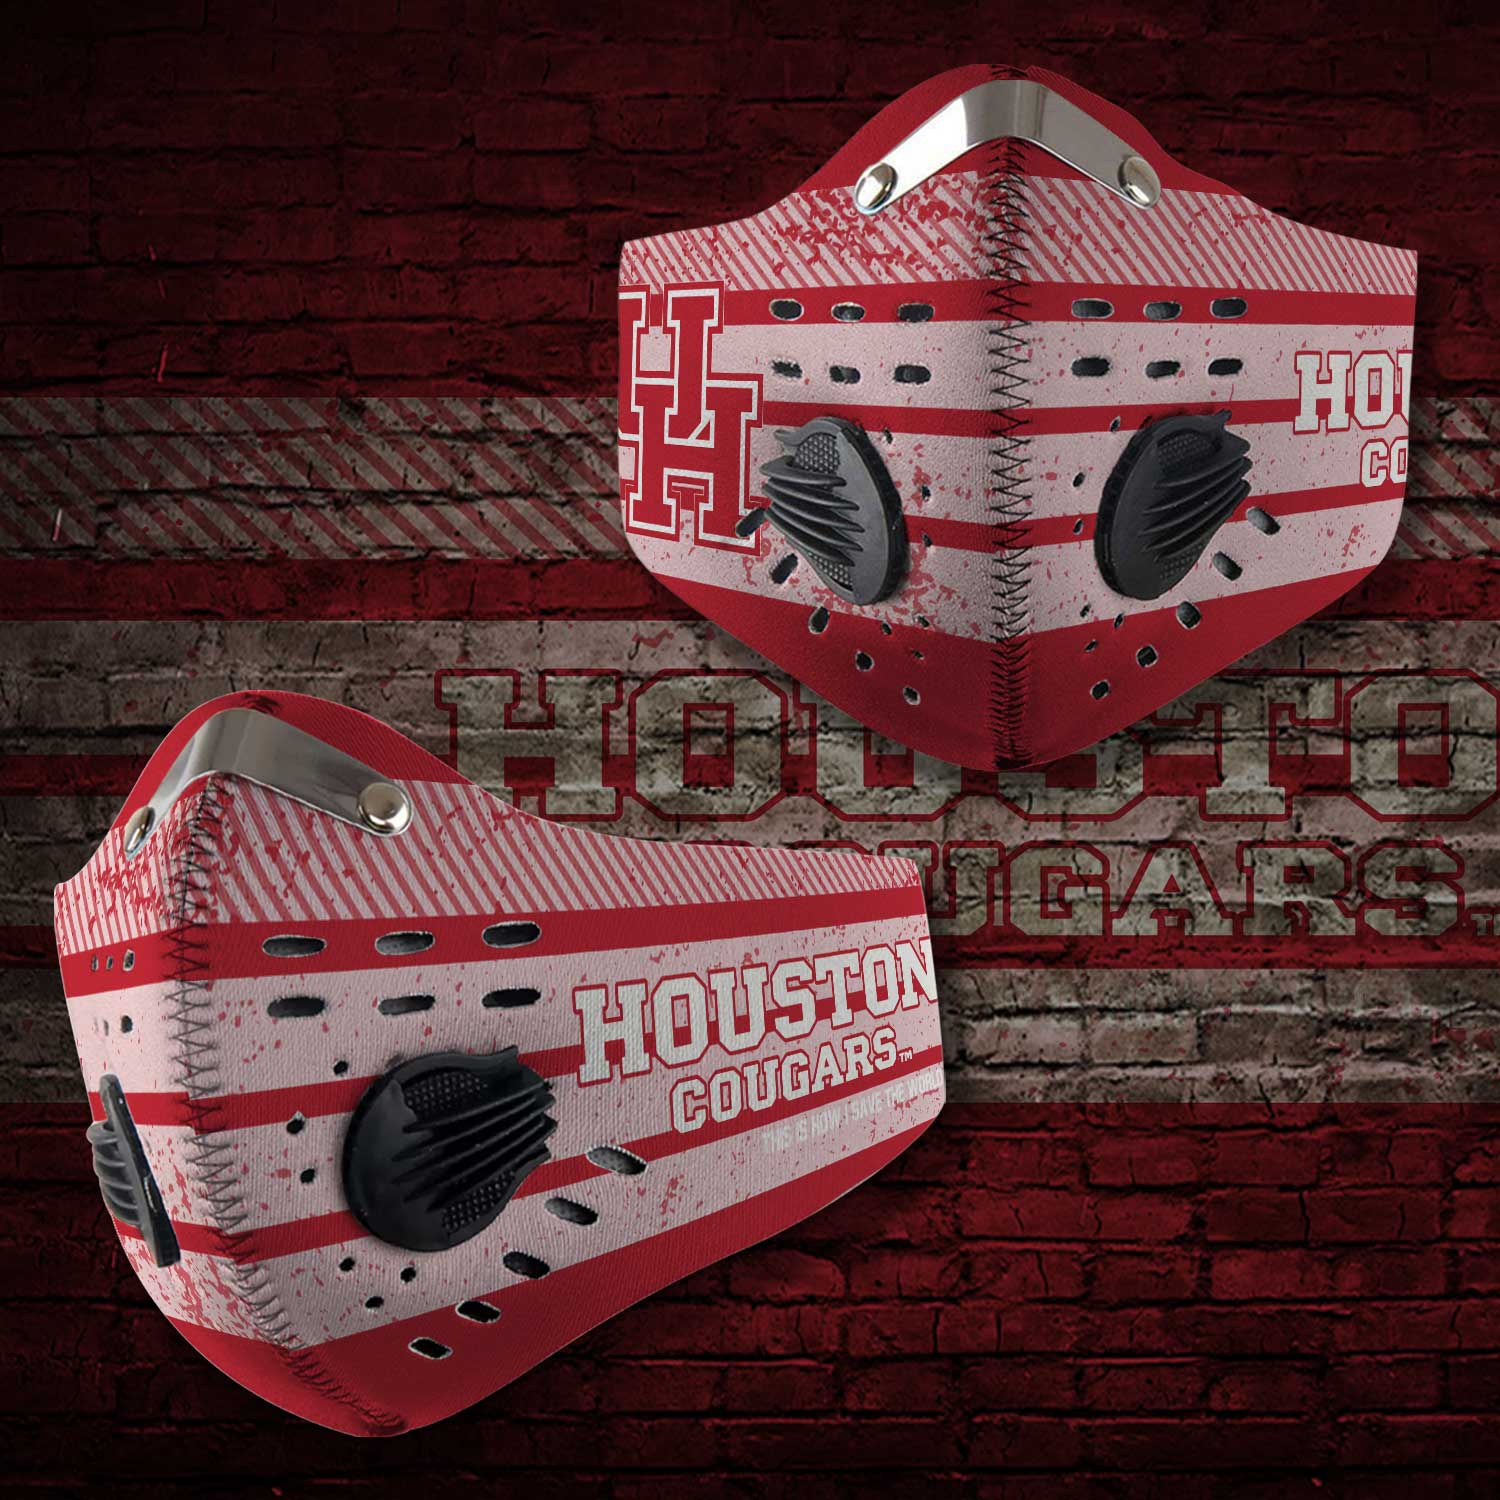 Houston cougars football this is how i save the world face mask 2